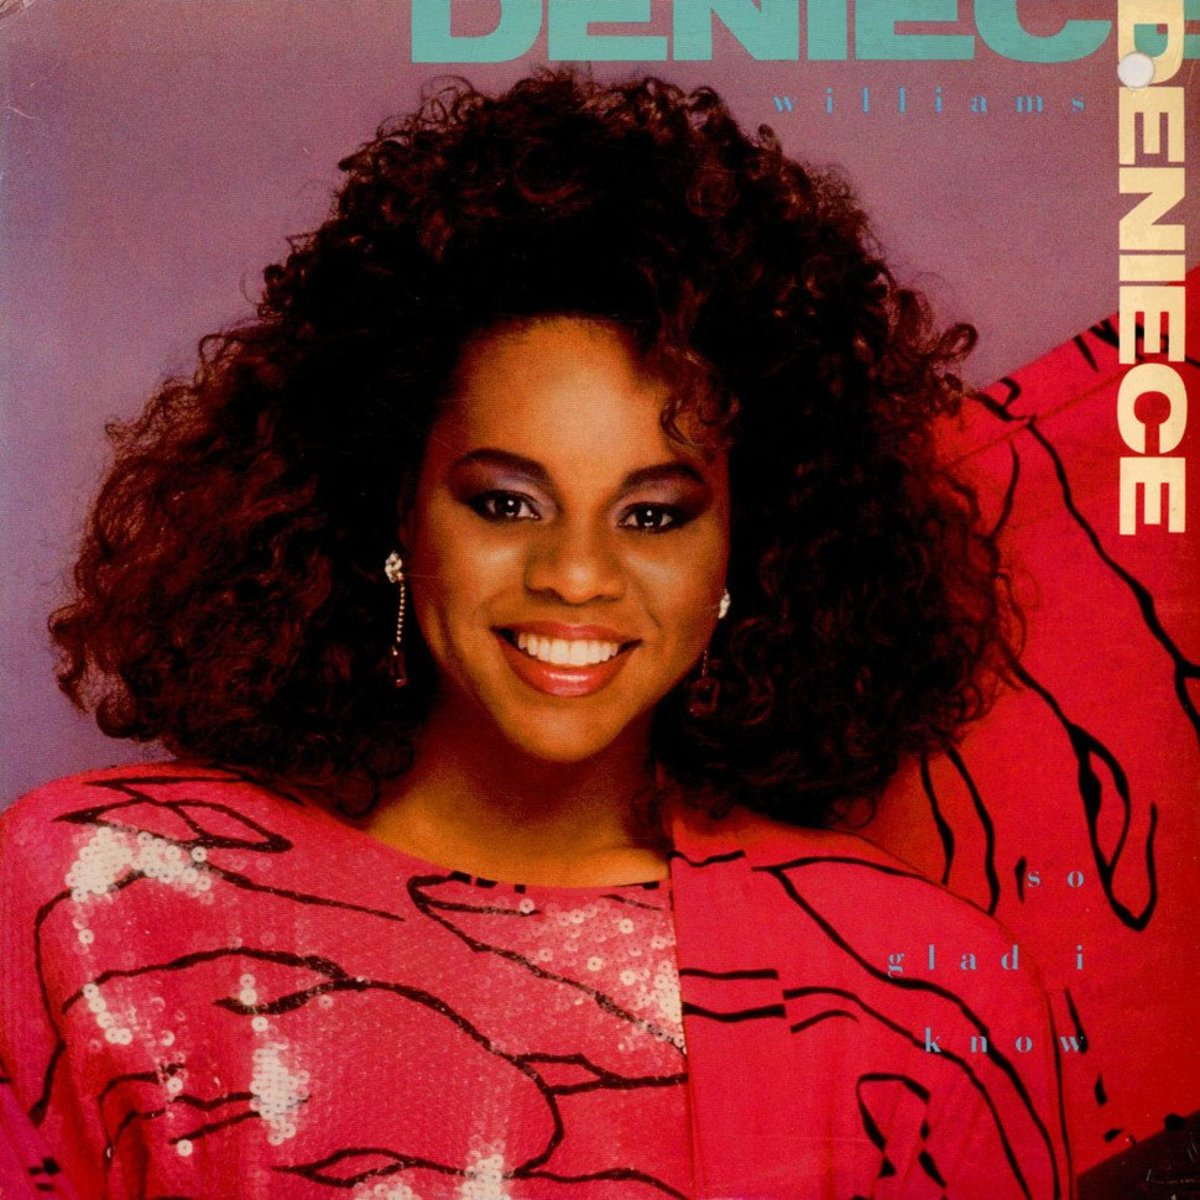 Whatever Happened to Deniece Williams? (80s R&B Singer)